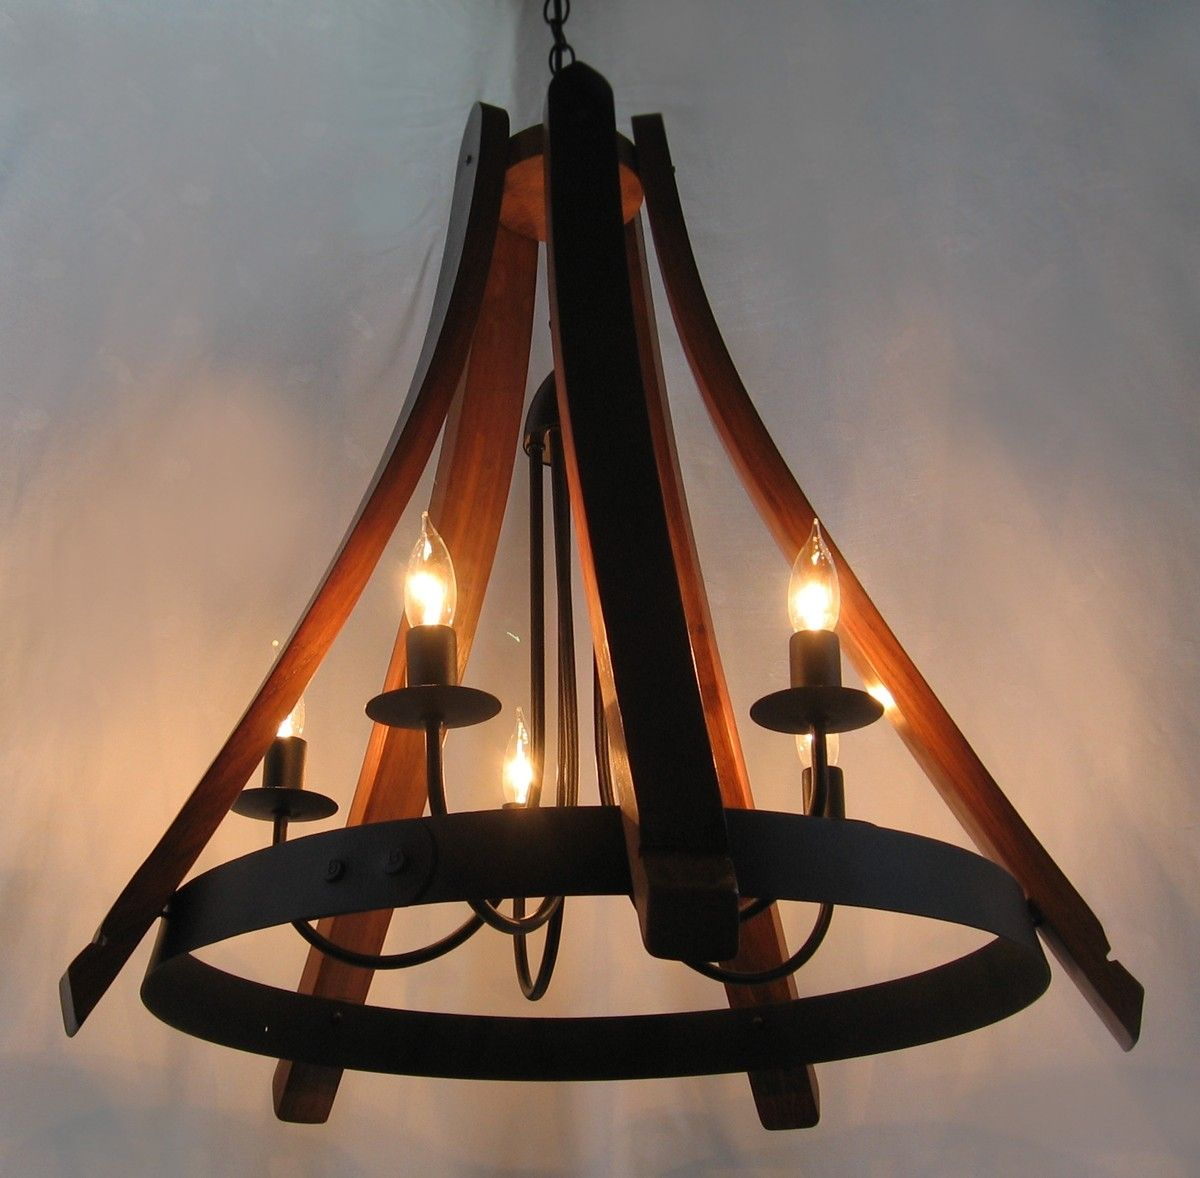 Custom Made Cervantes Wine Barrel Chandelier Recycled Oak Staves And Hoop Pendant Ceiling Light